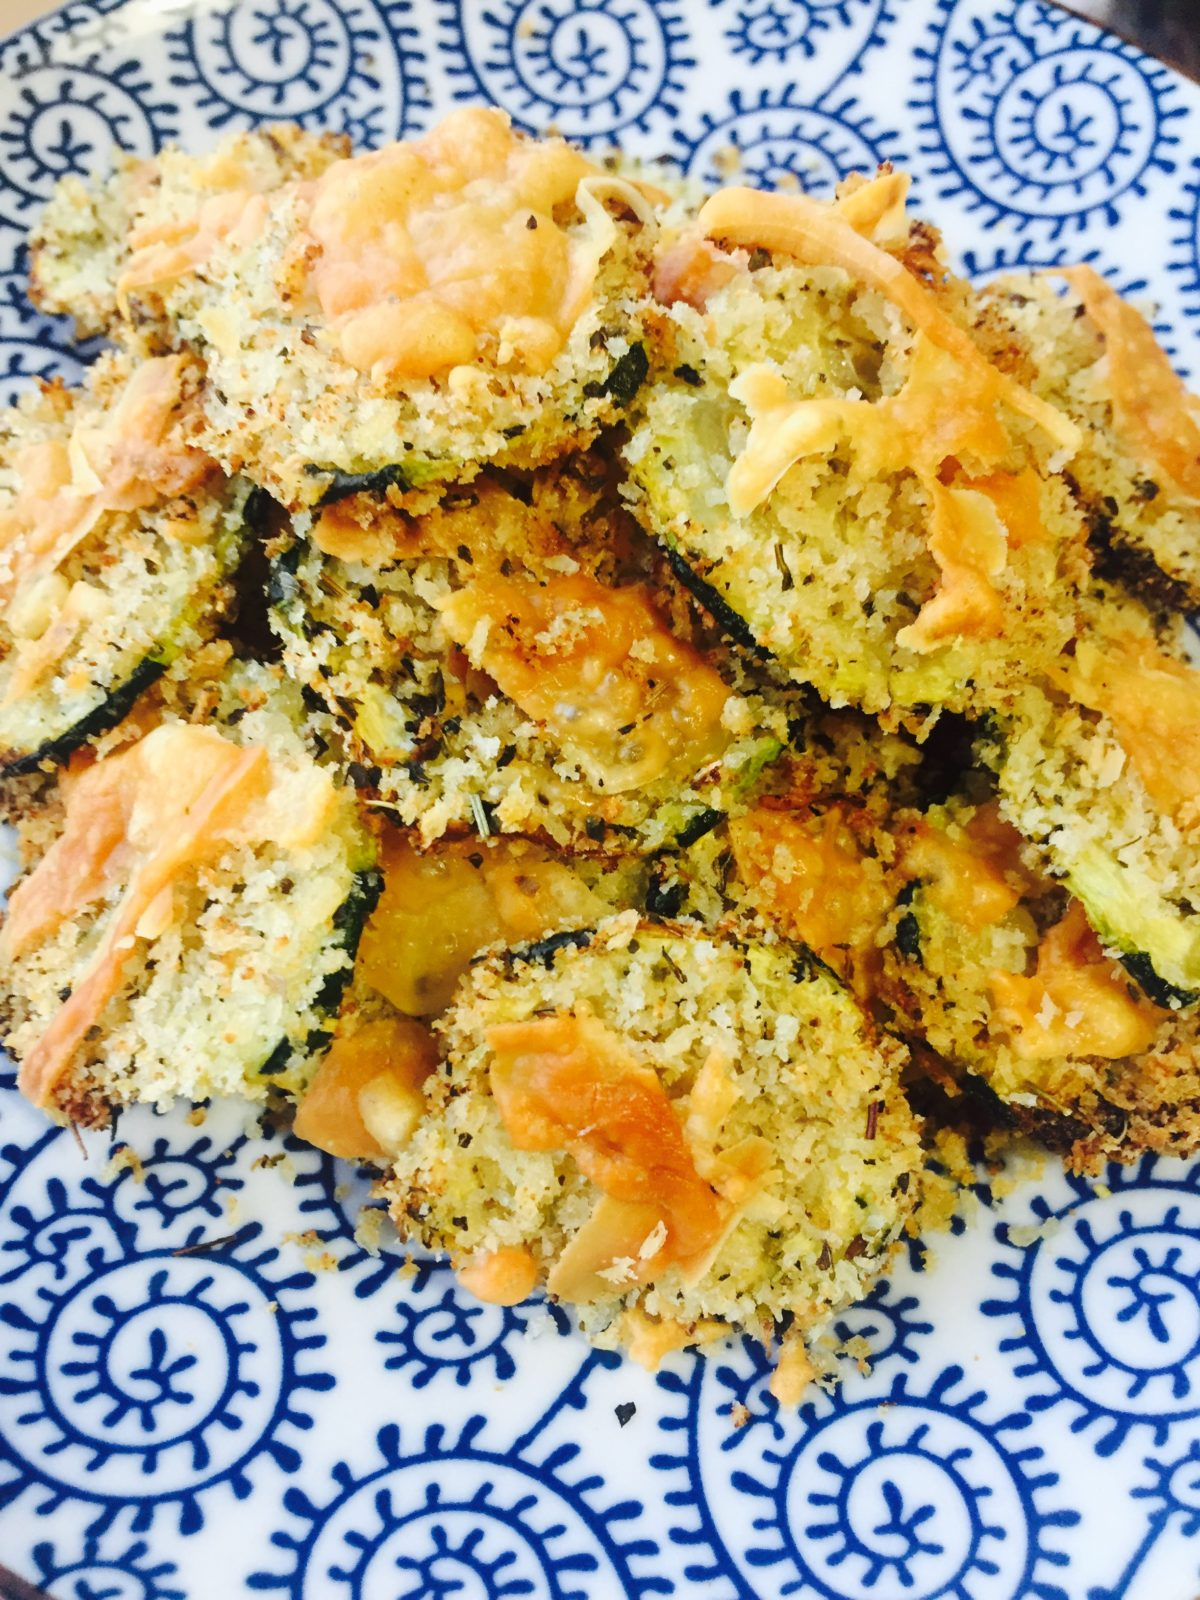 Baked Parmesan Zucchini Chips